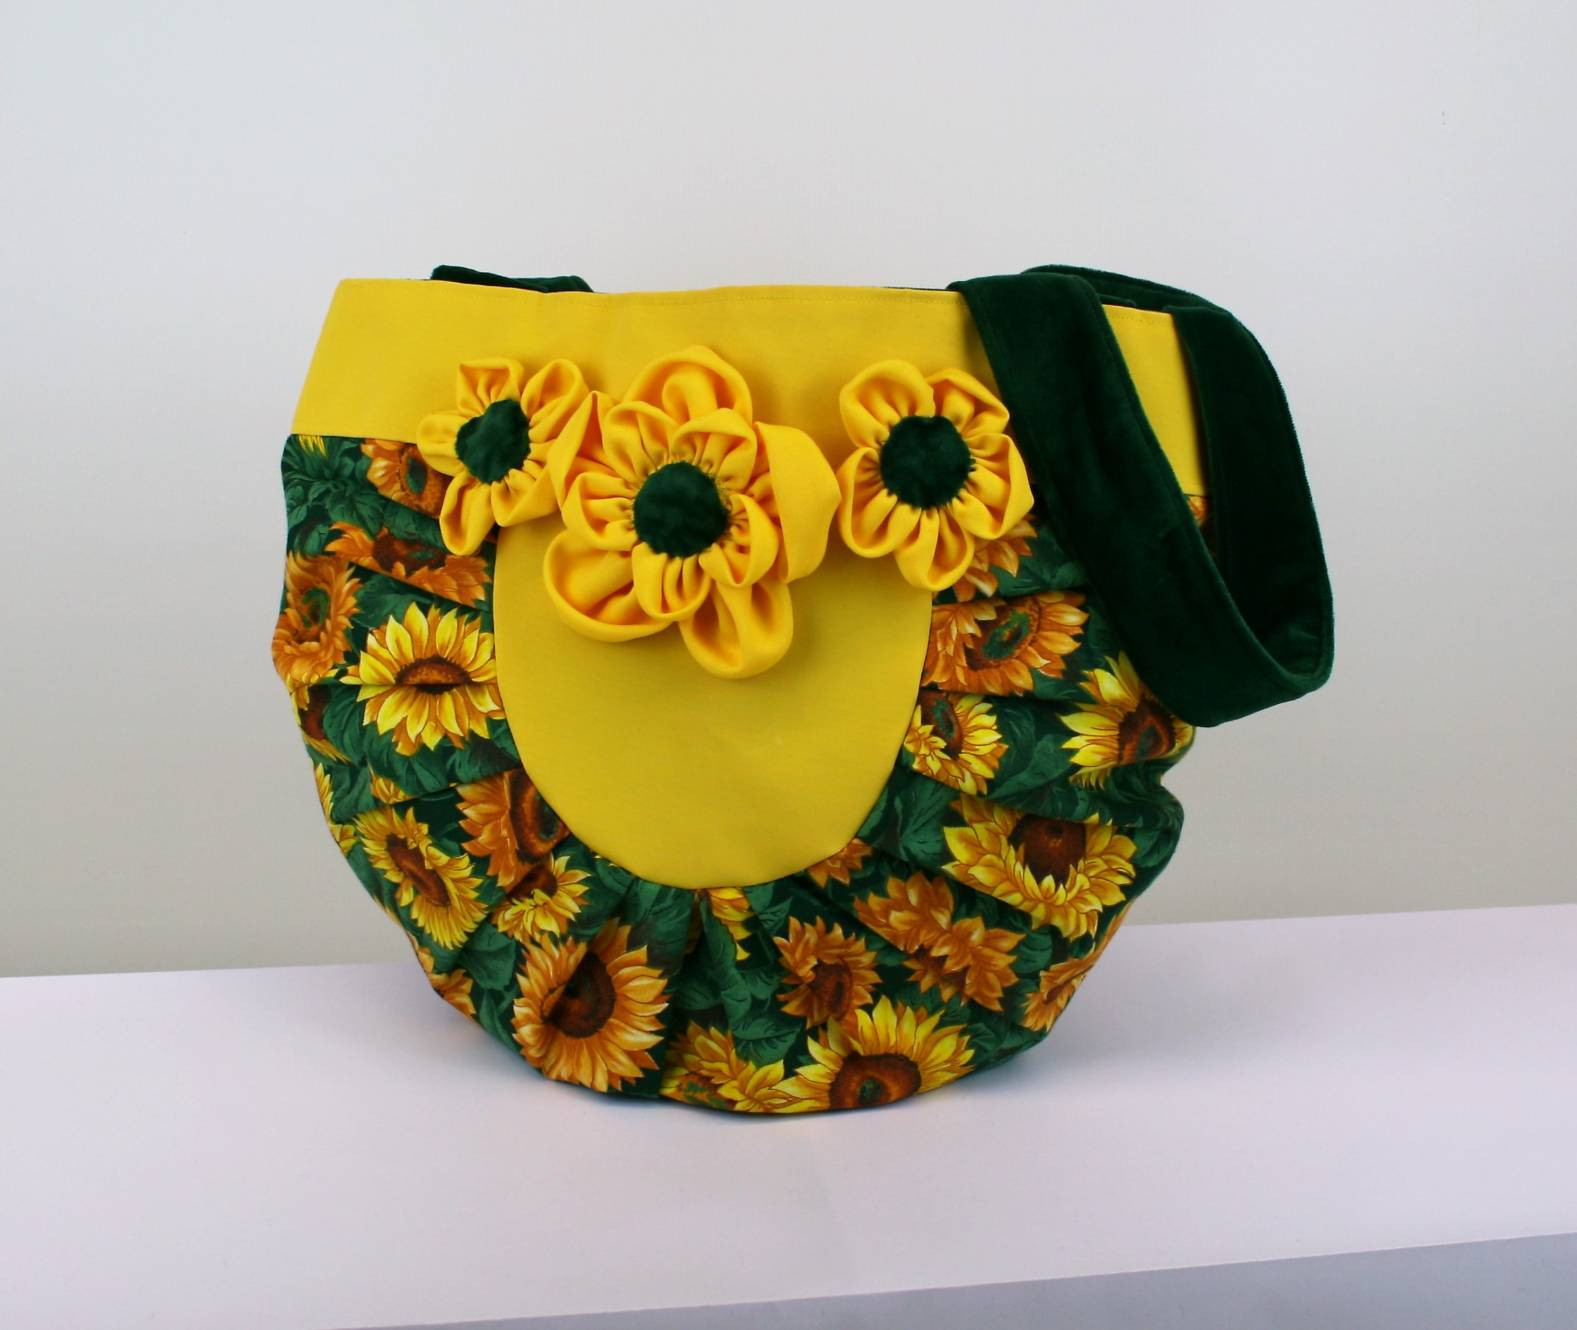 Shoppingtasche_3D_Sunflower_2019